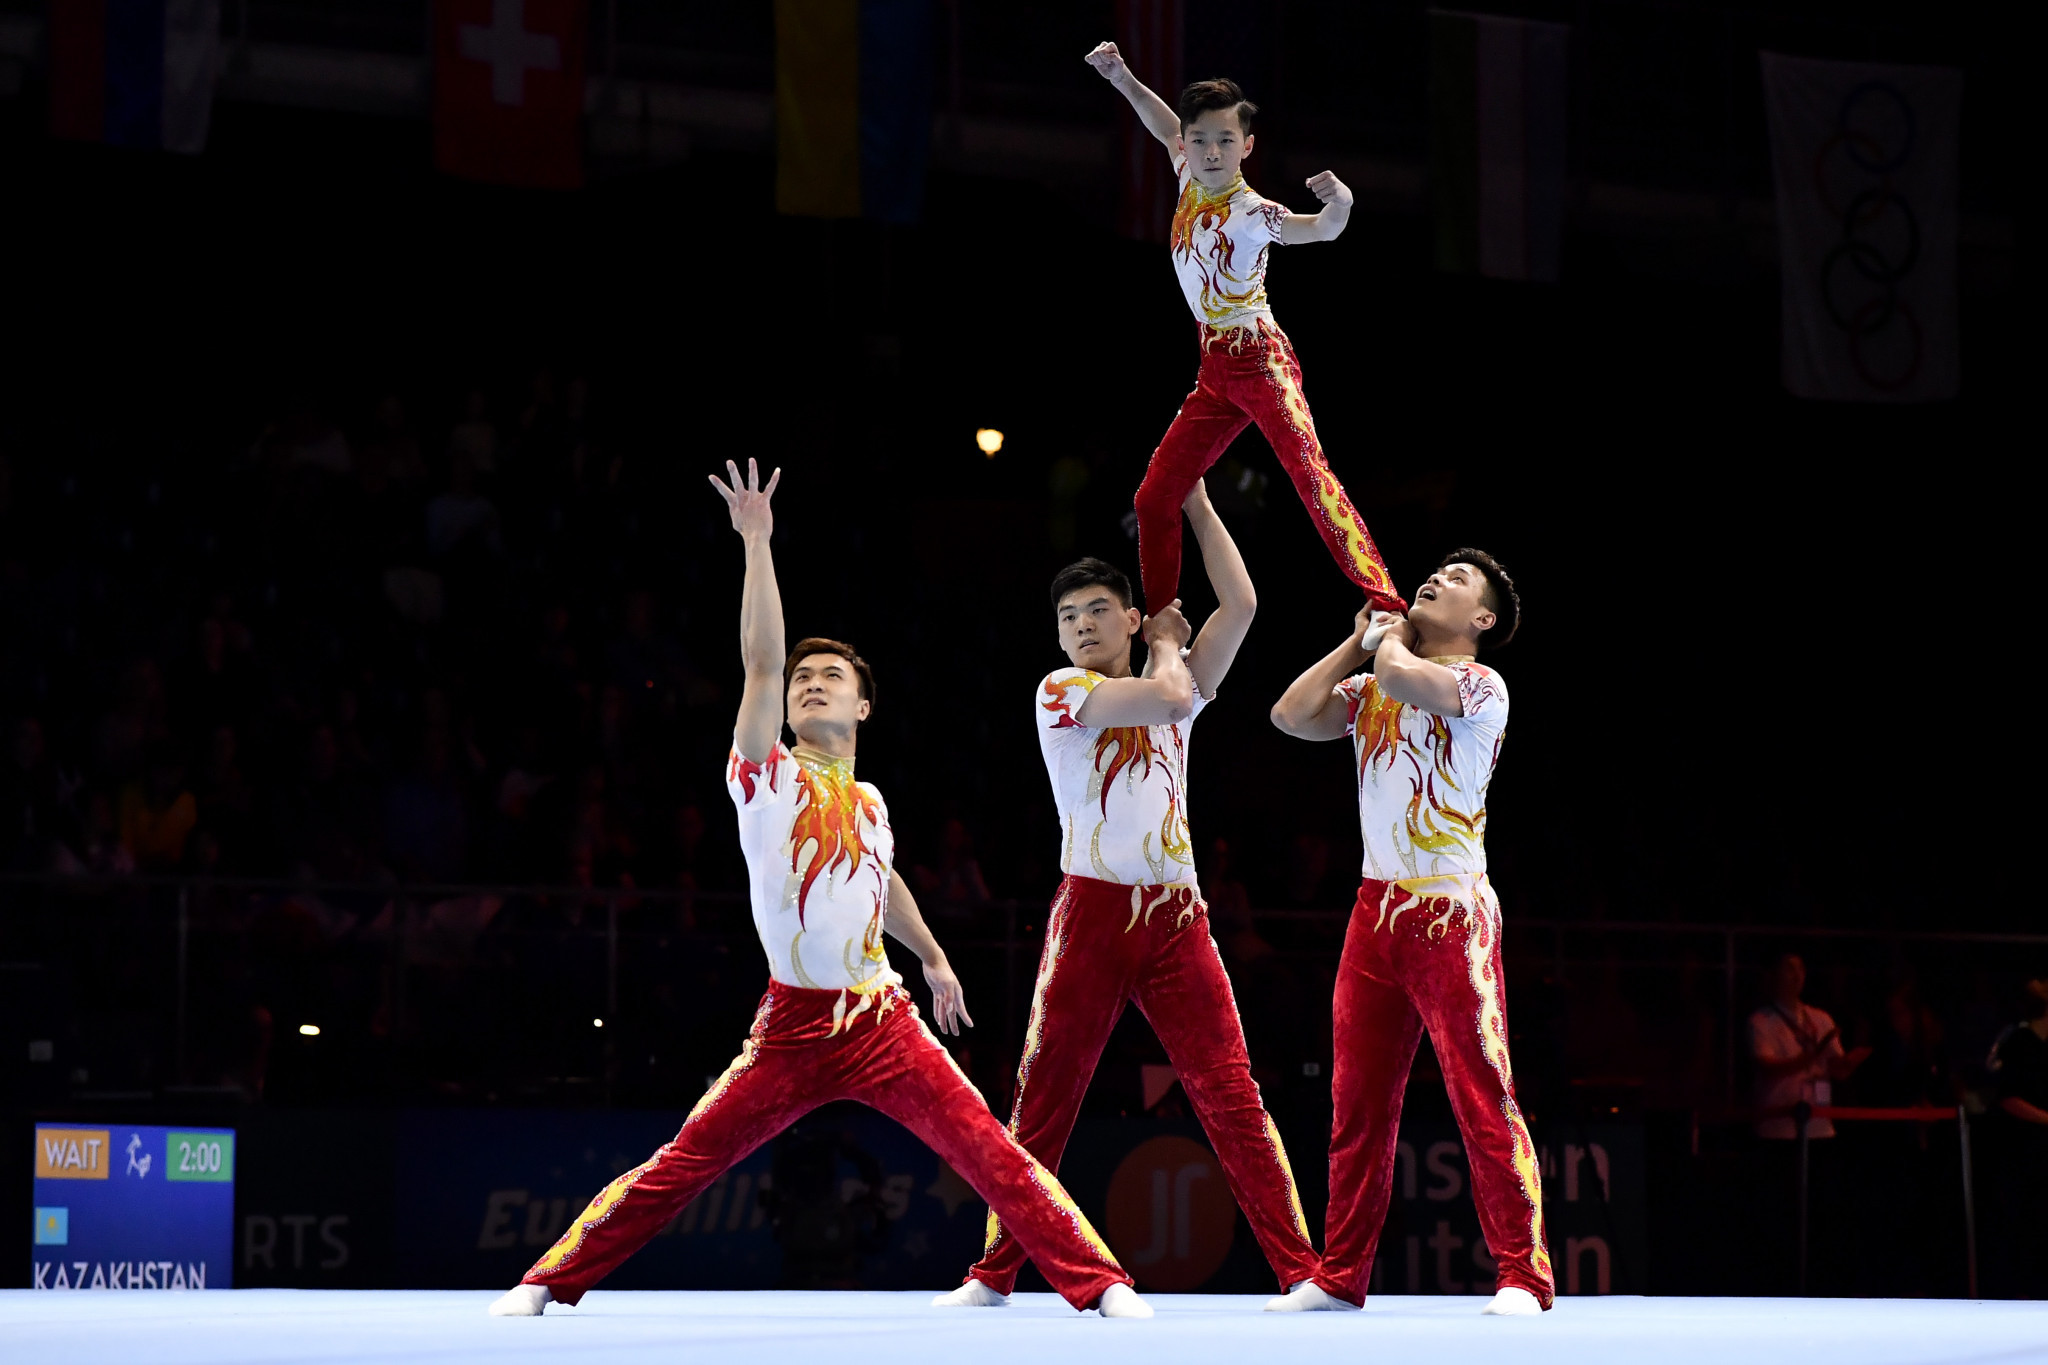 China's Fu Zhi, Guo Pei, Jiang Heng and Zhang Junshuo are expected to be strong contenders in the men's group ©Getty Images